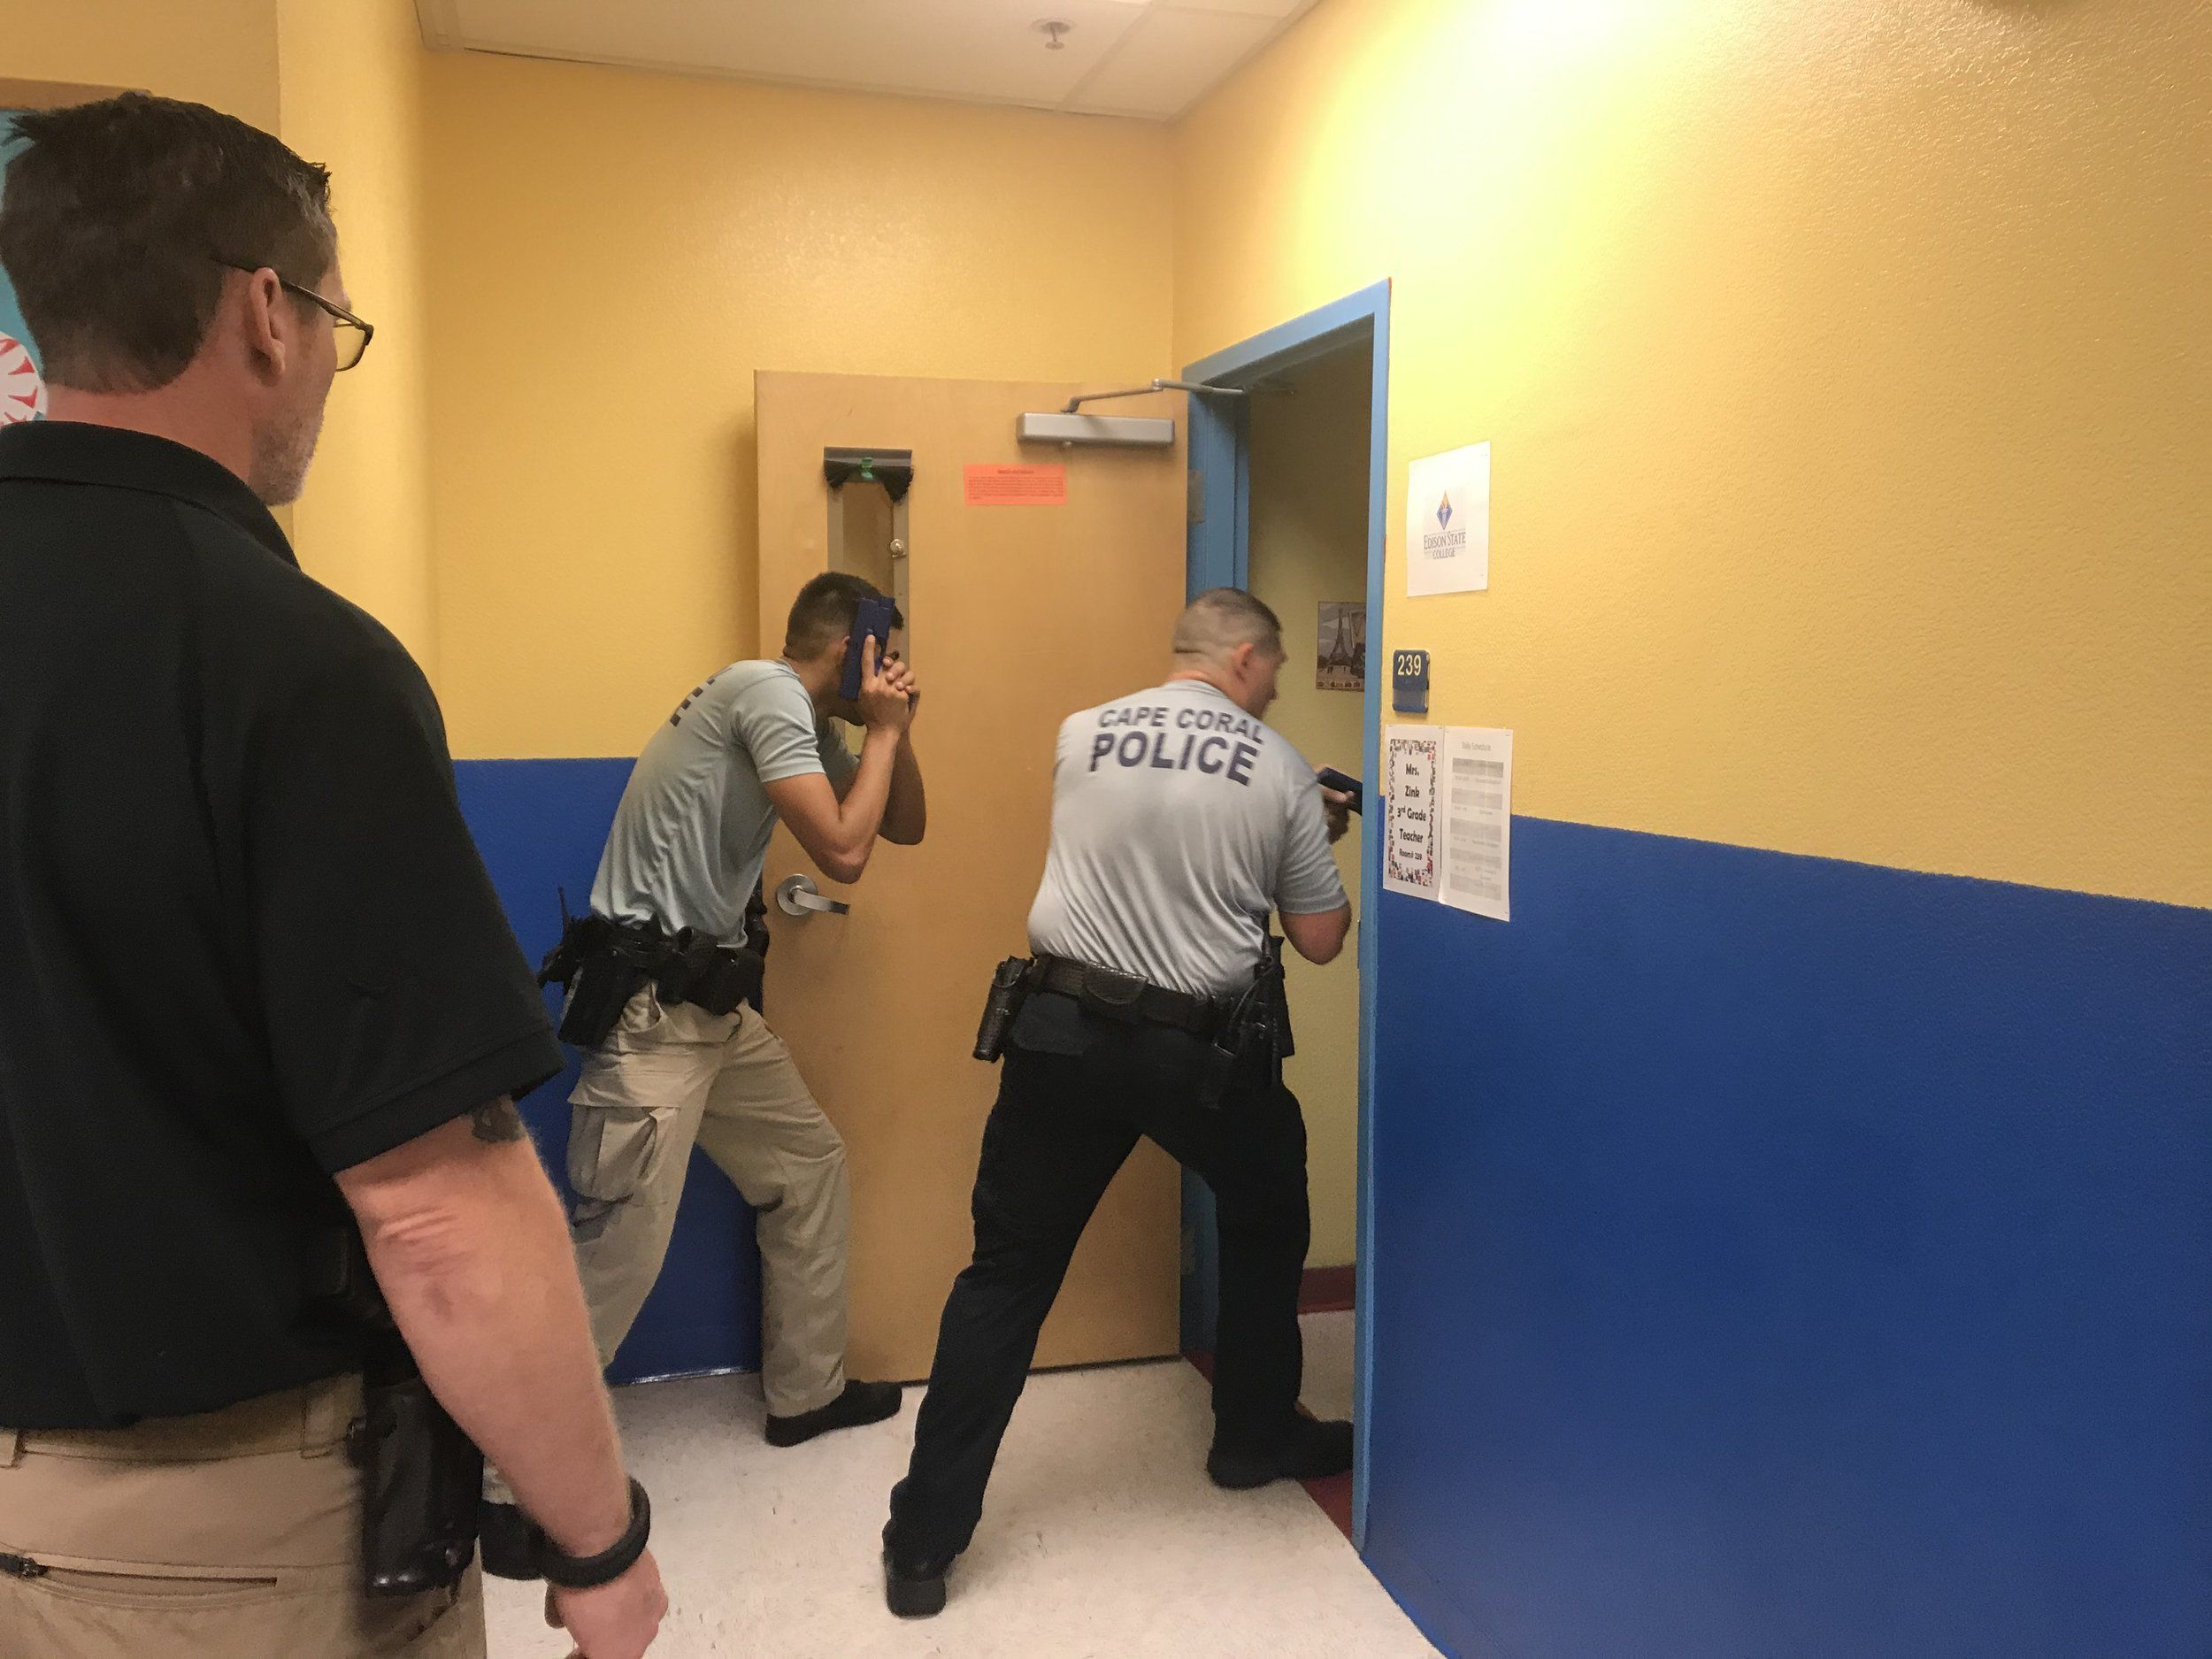 Training For Building Clearing And Active Shooter